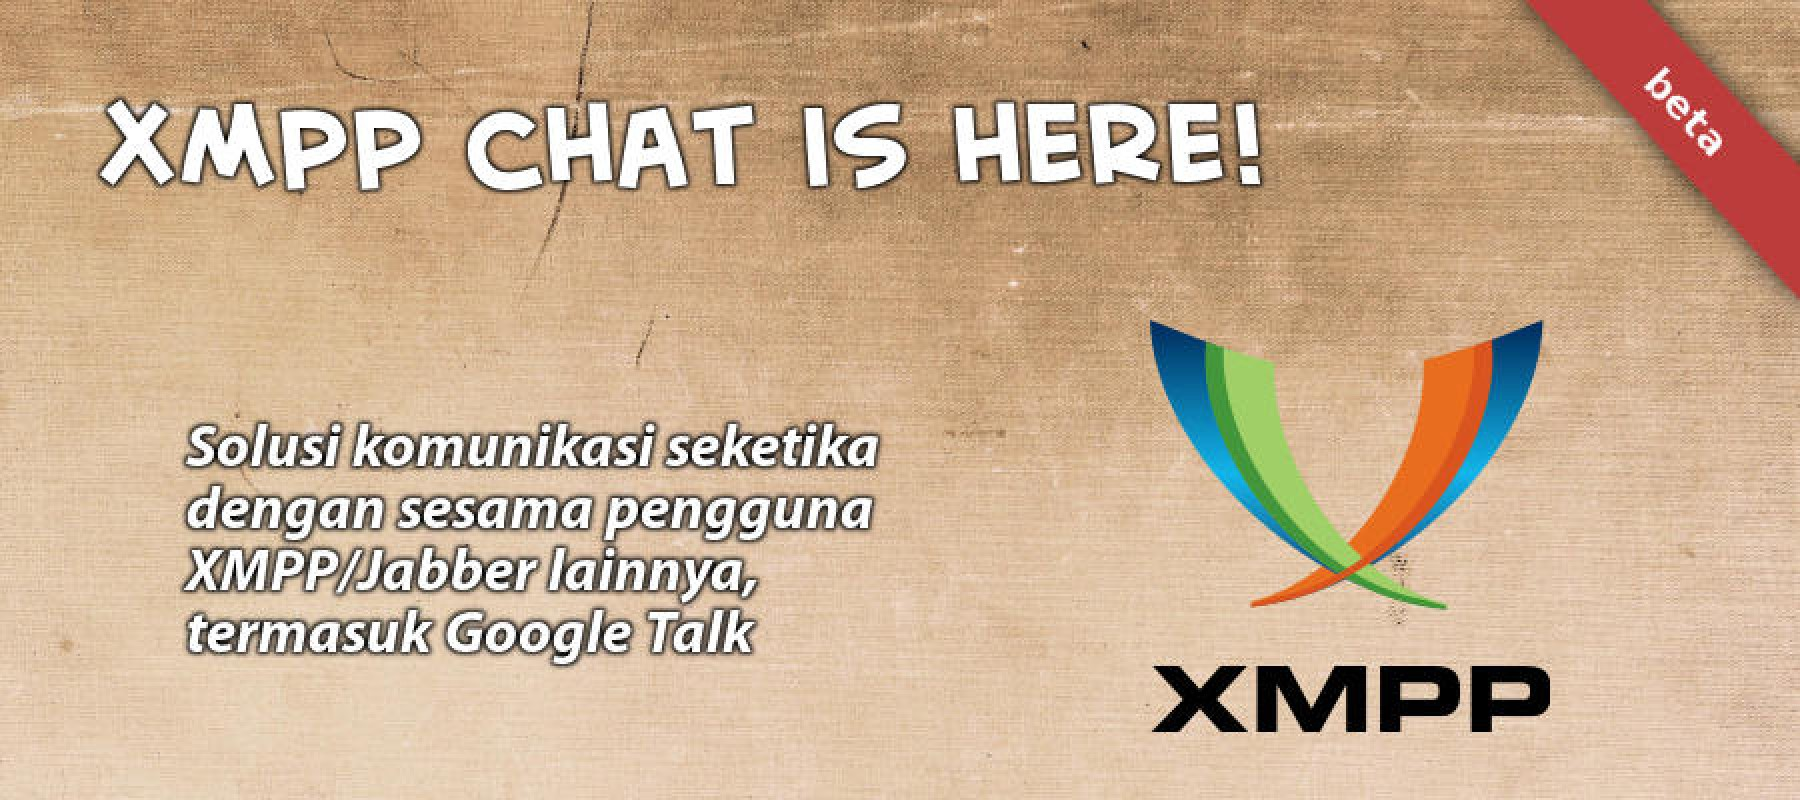 XMPP Chat is here!